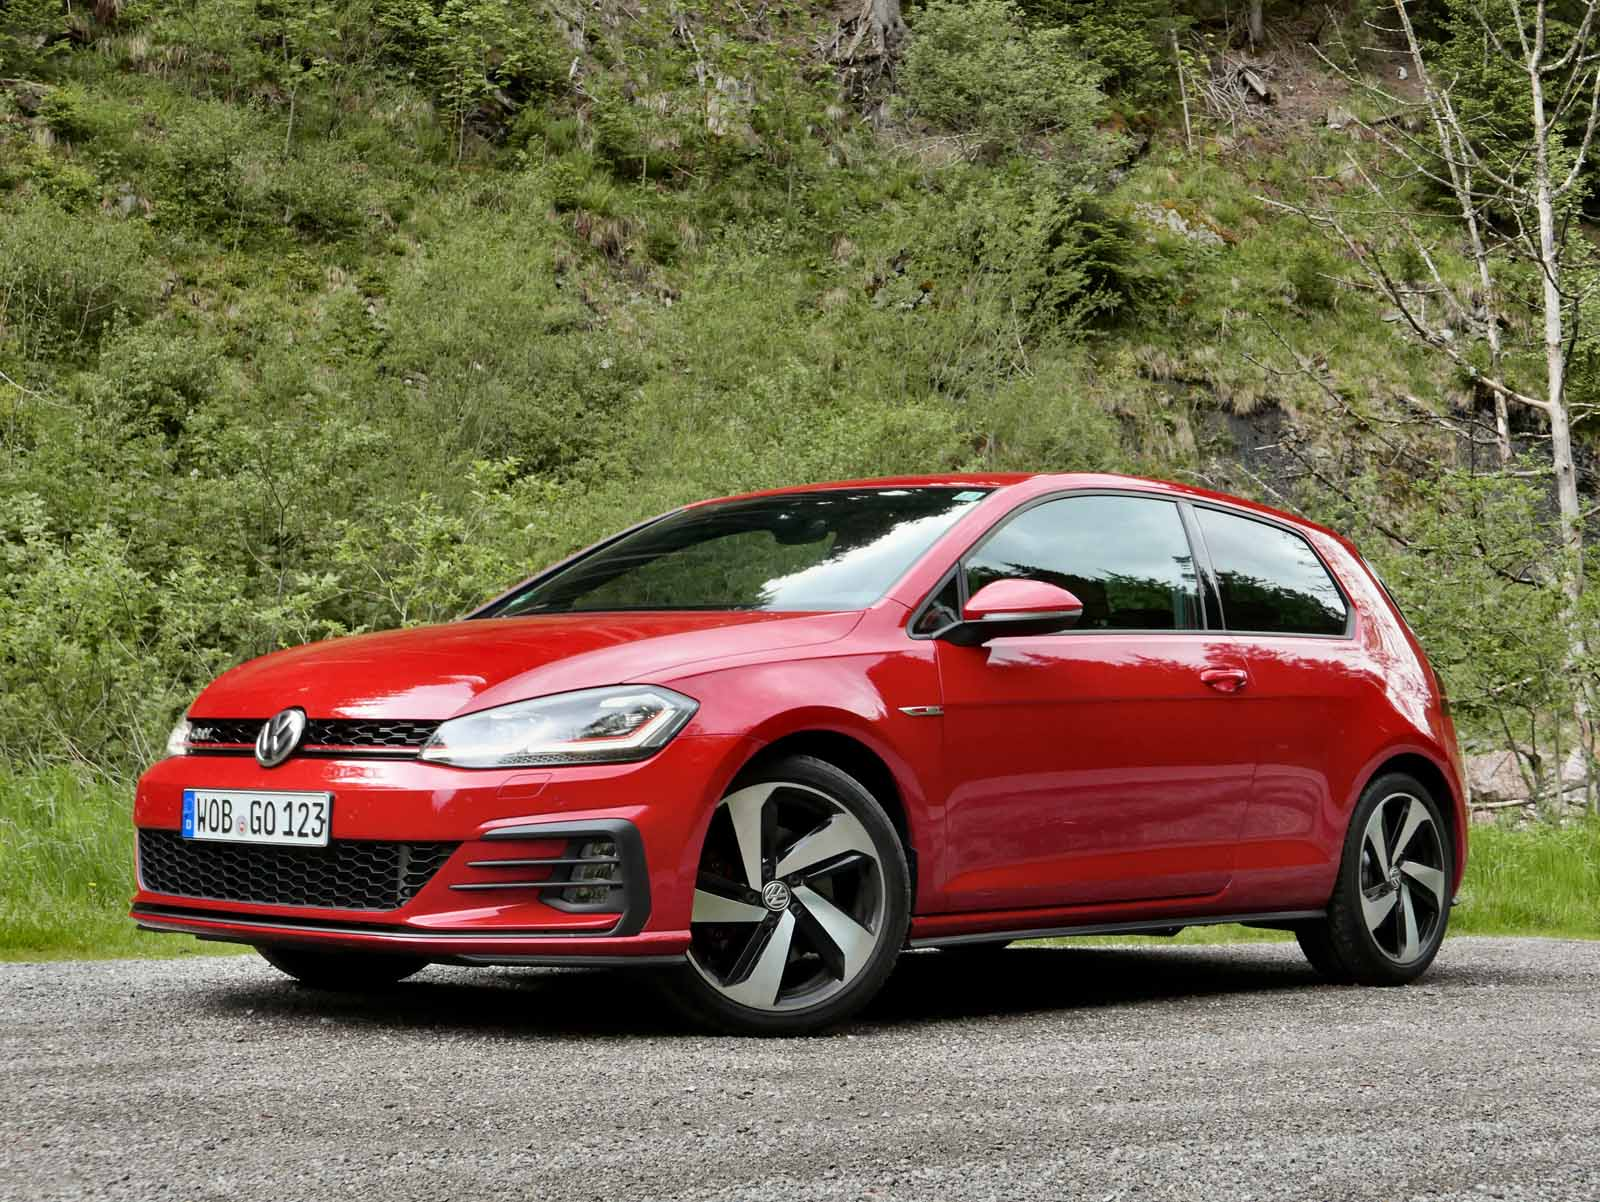 2018 volkswagen gti vs golf r which hot hatch should you buy. Black Bedroom Furniture Sets. Home Design Ideas